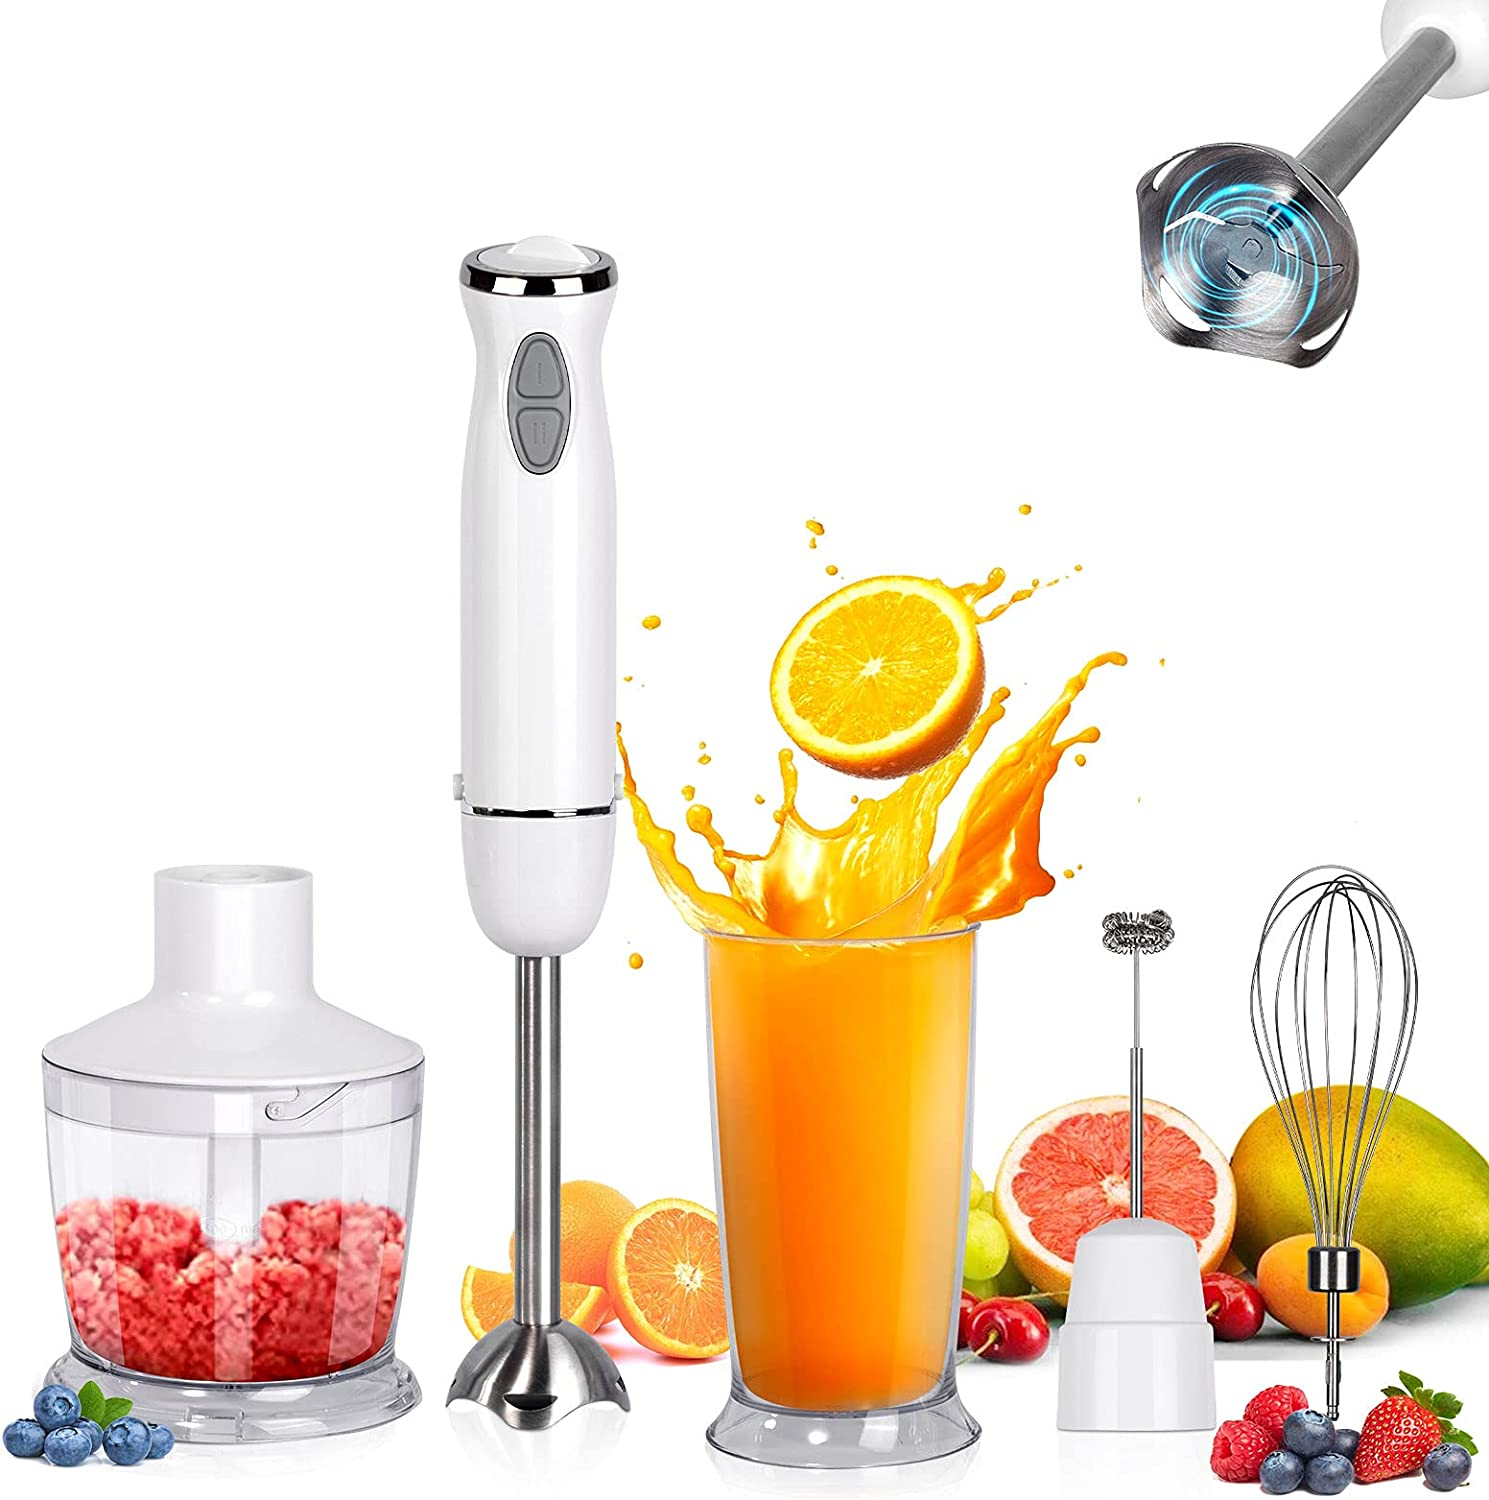 Immersion Blender handheld Rosydawn 1100W NEW before selling Ranking TOP5 ☆ Hand I 5-in-1